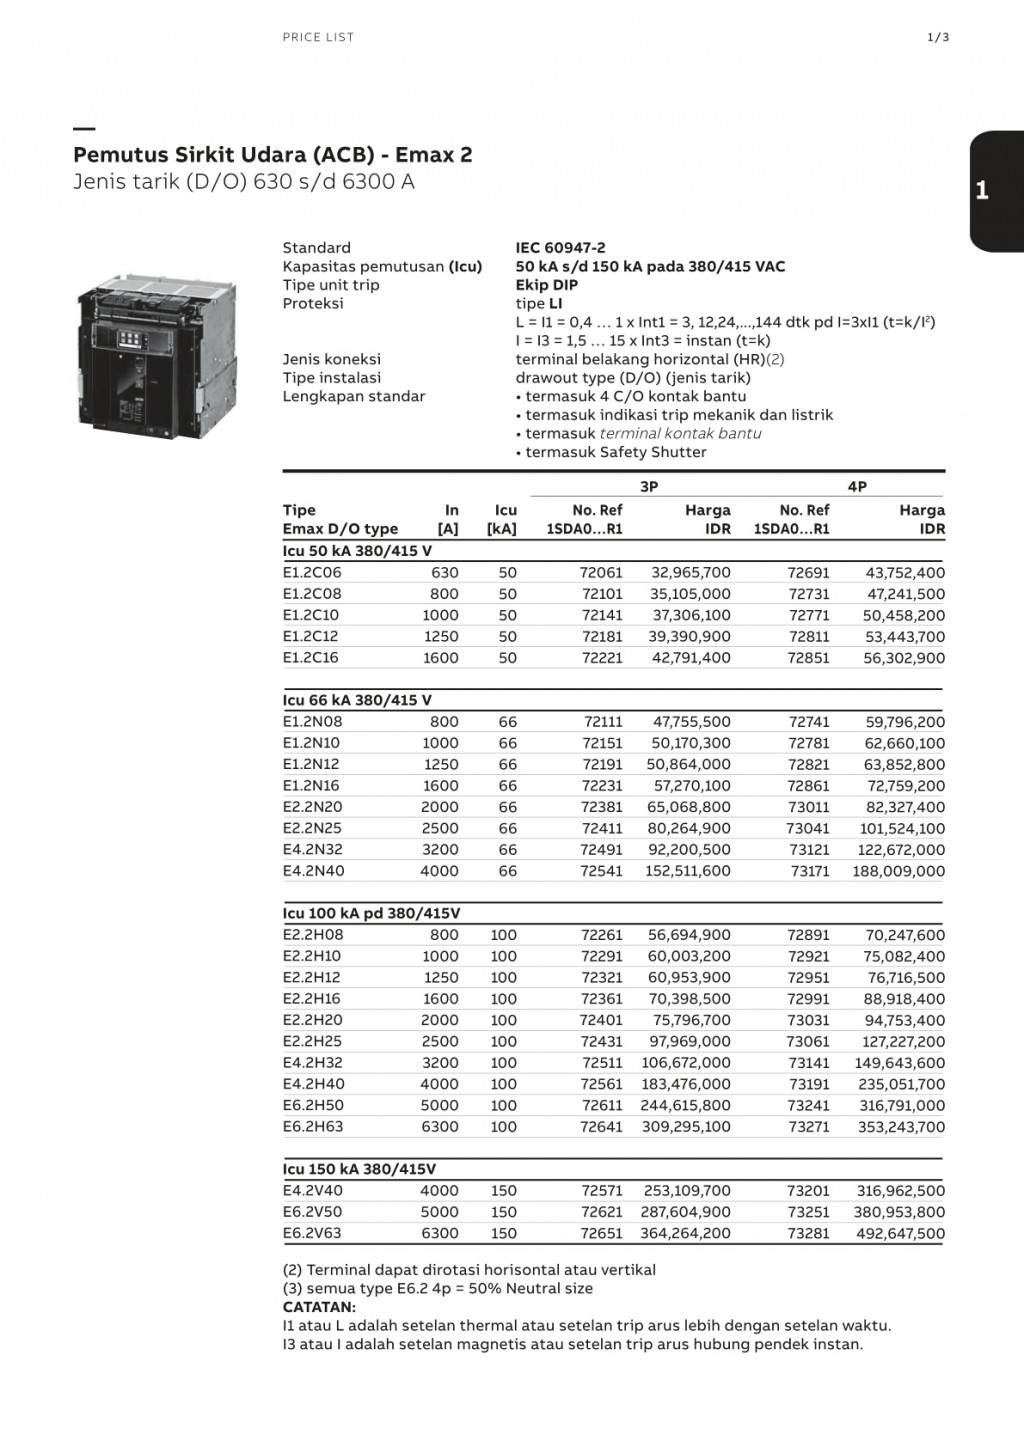 ACCESSORIES PANEL & BOX PANEL, ABB ELECTRIFICATION PRODUCT PRICELIST 2018, Pemutus Sirkuit Udara (ACB) Emax2 - Jenis Tarik (D/O) 630 s/d 6300A